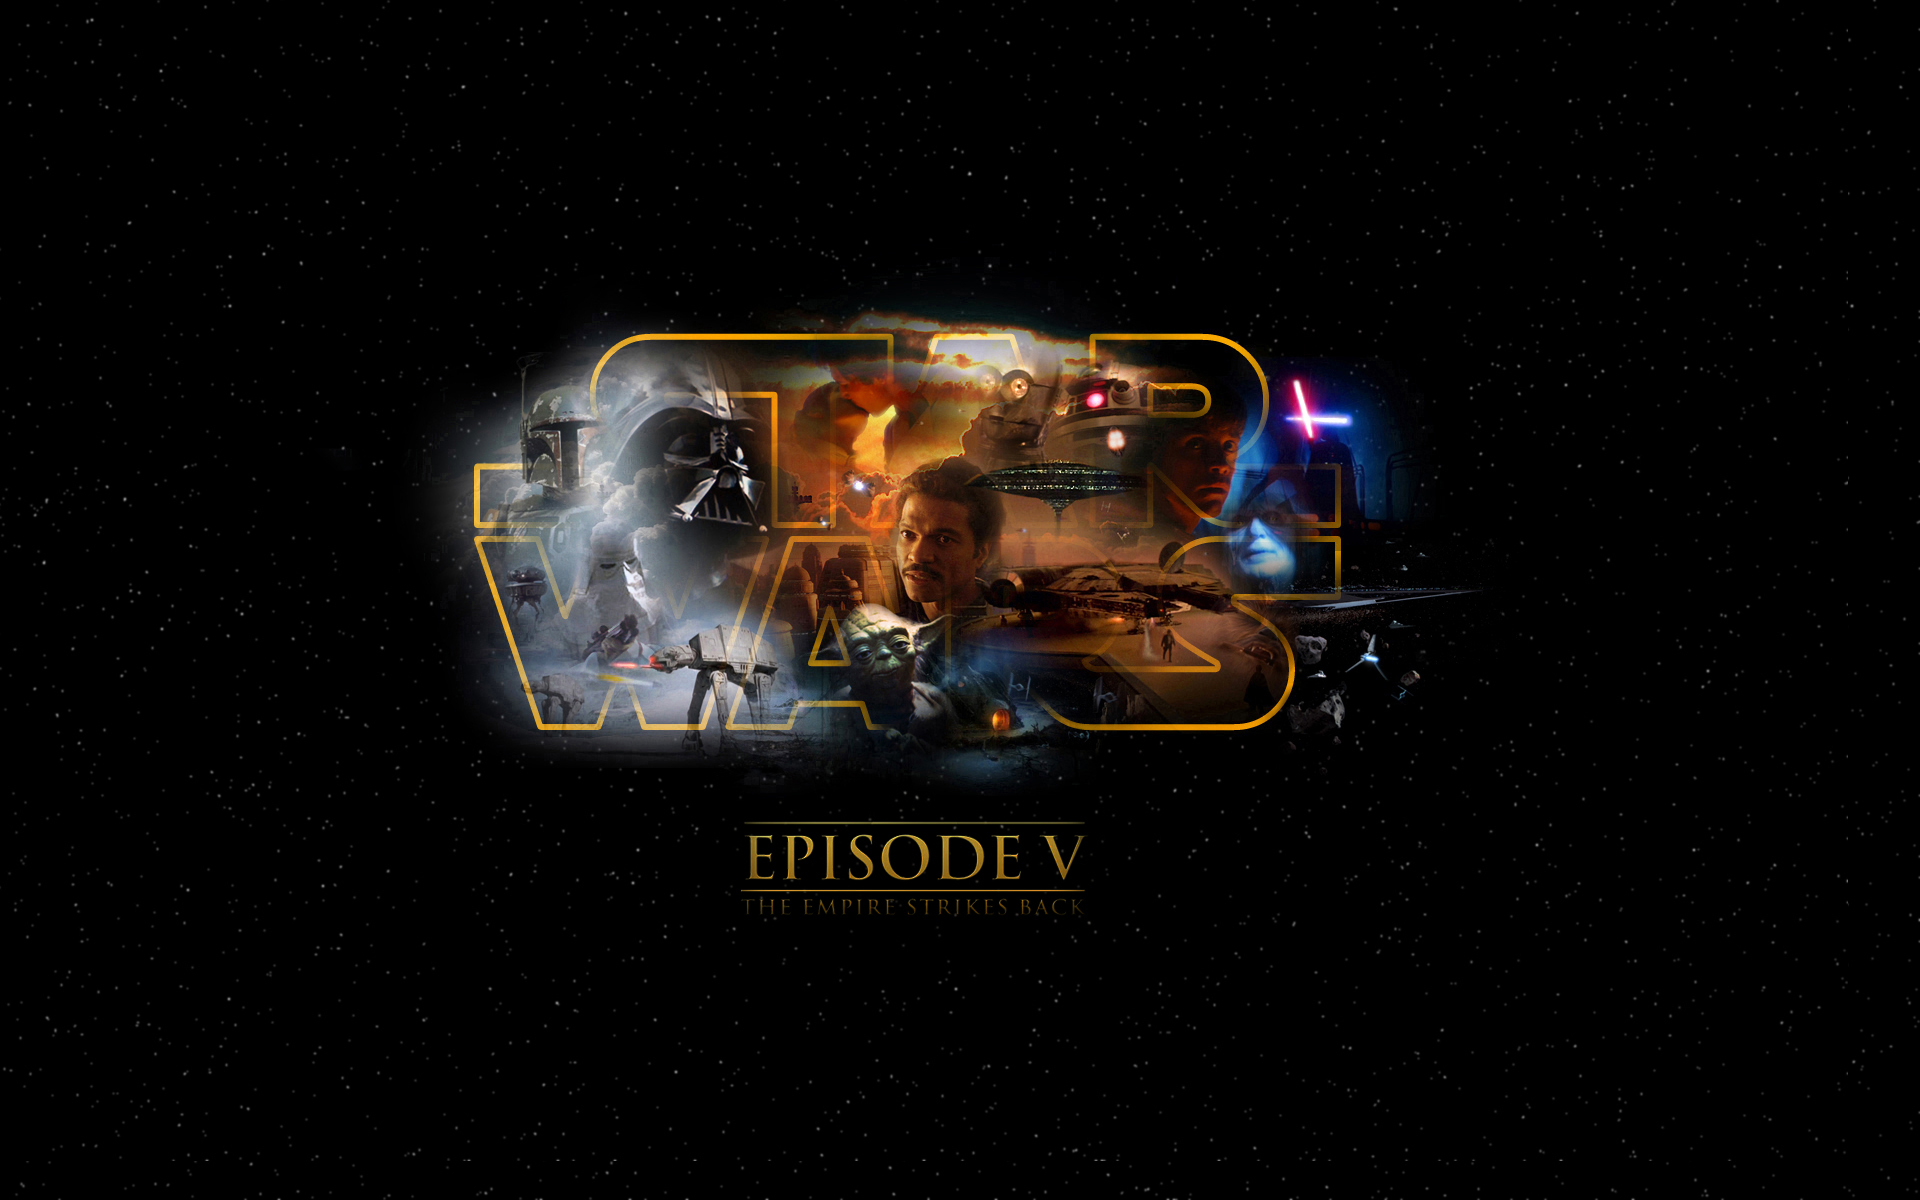 Free Download Empire Strikes Back Wallpaper 1920x1200 For Your